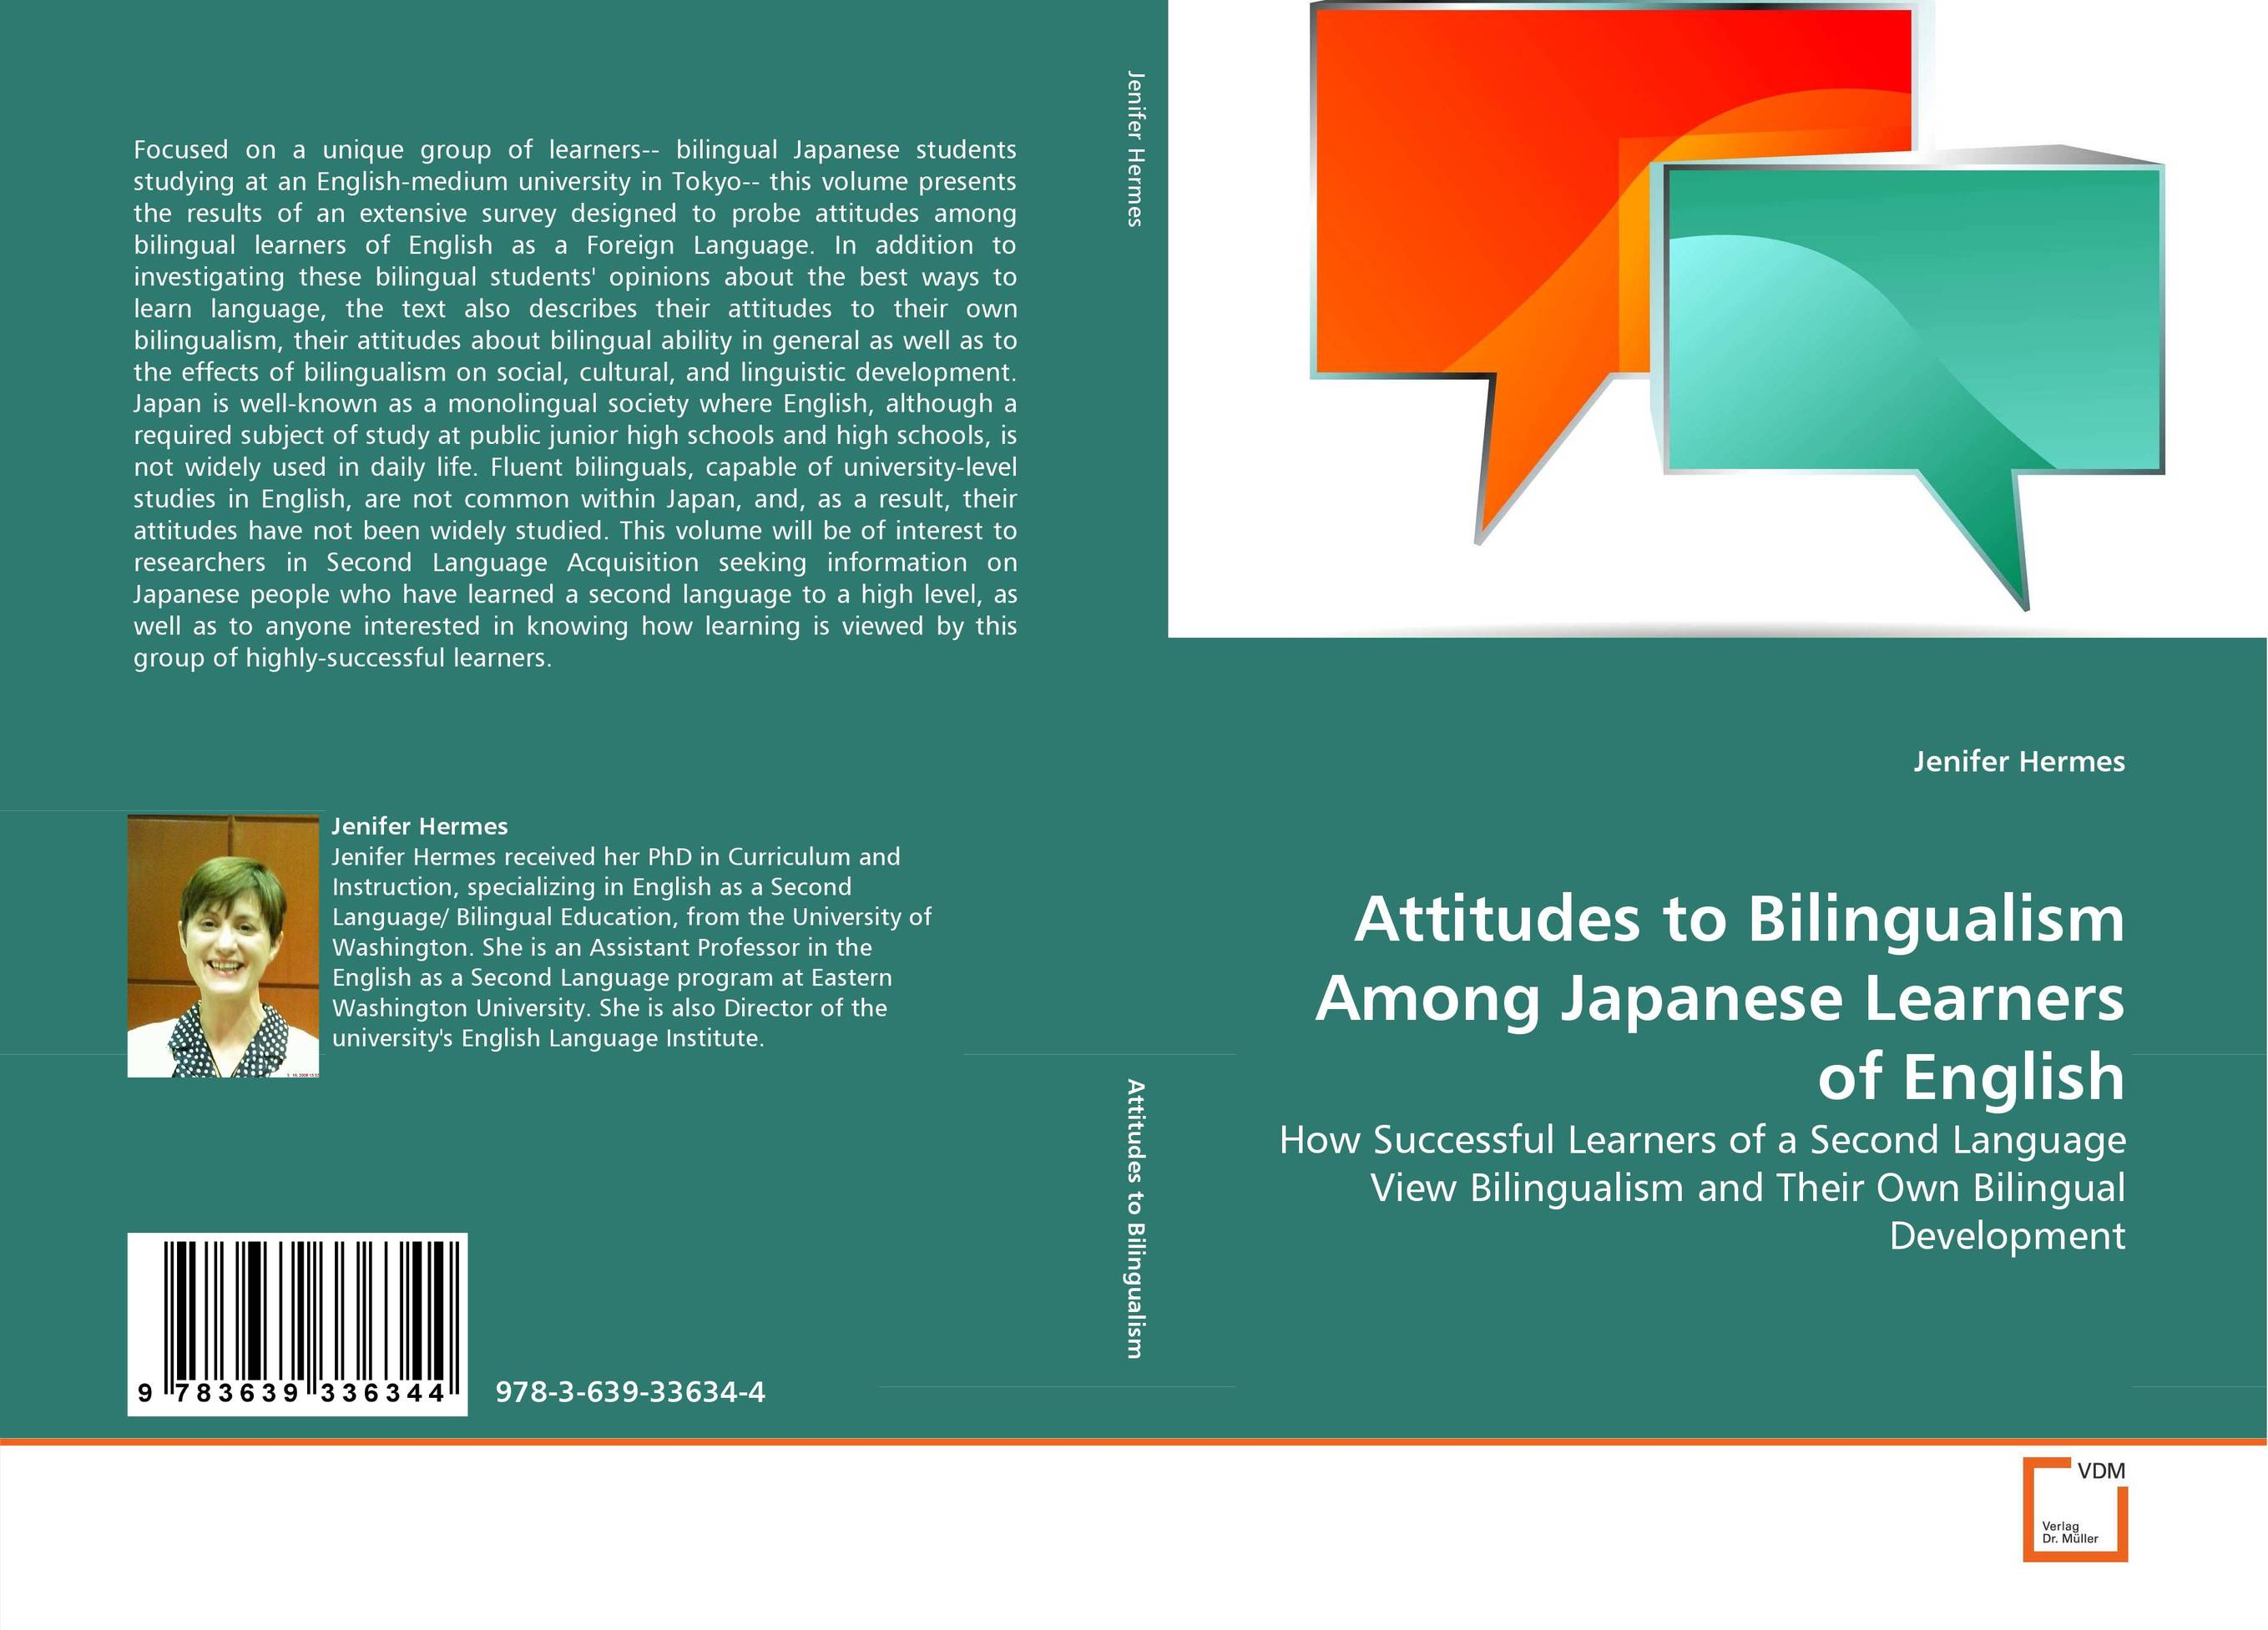 Attitudes to Bilingualism Among Japanese Learners of English attitudes to bilingualism among japanese learners of english